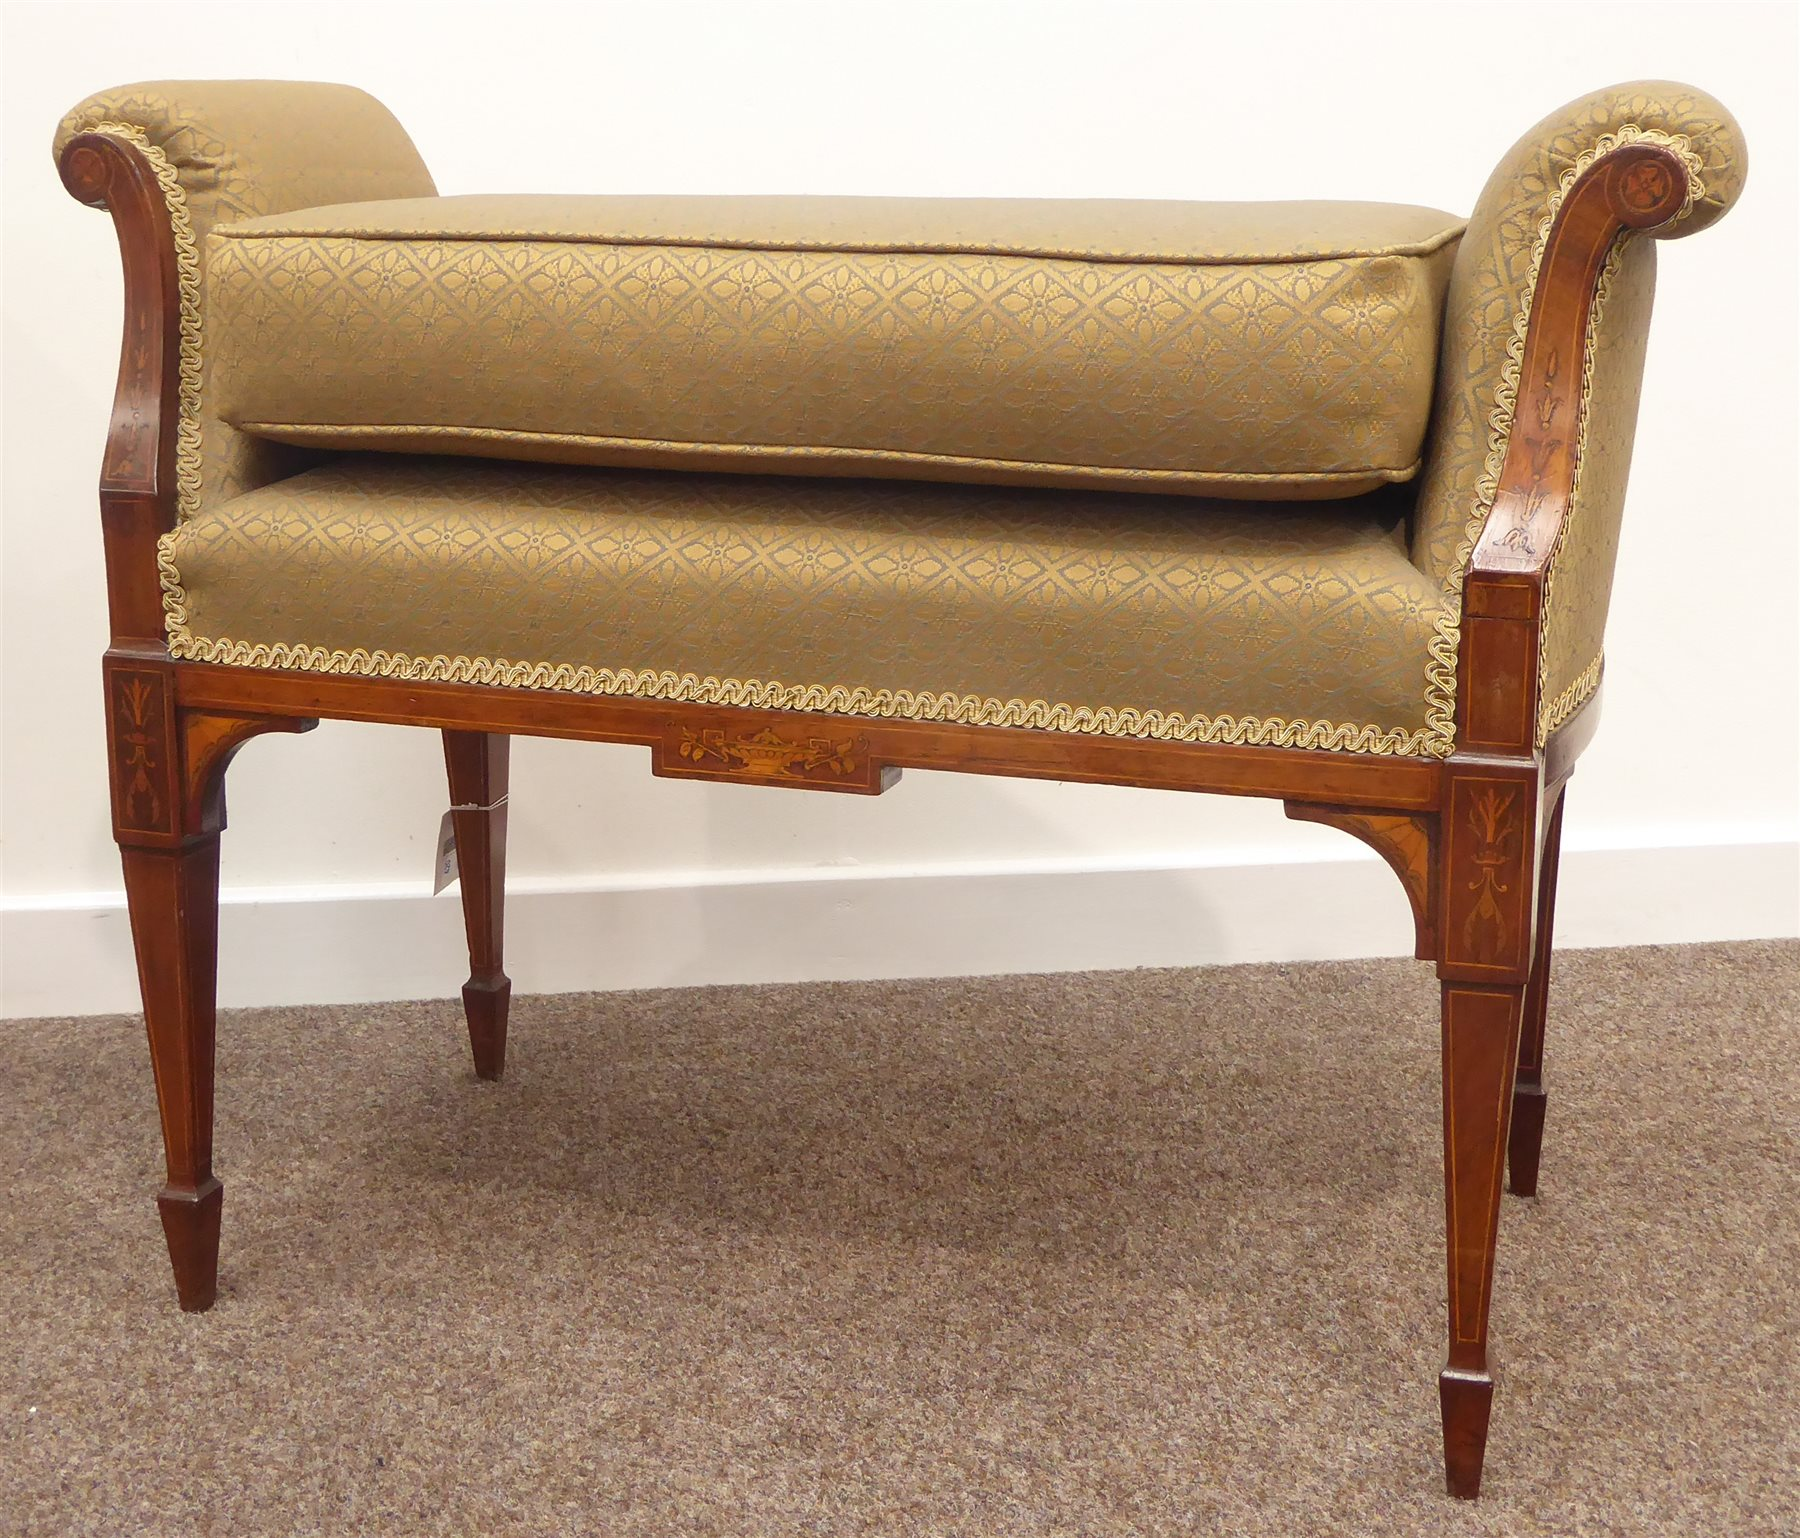 Edwardian Inlaid Rosewood Window Seat Scrolled Arms Upholstered In Patterned Fabric With Seat Cushion Square Tapering Supports With Spade Feet W86cm H65cm D39cm Antiques Fine Art Interiors